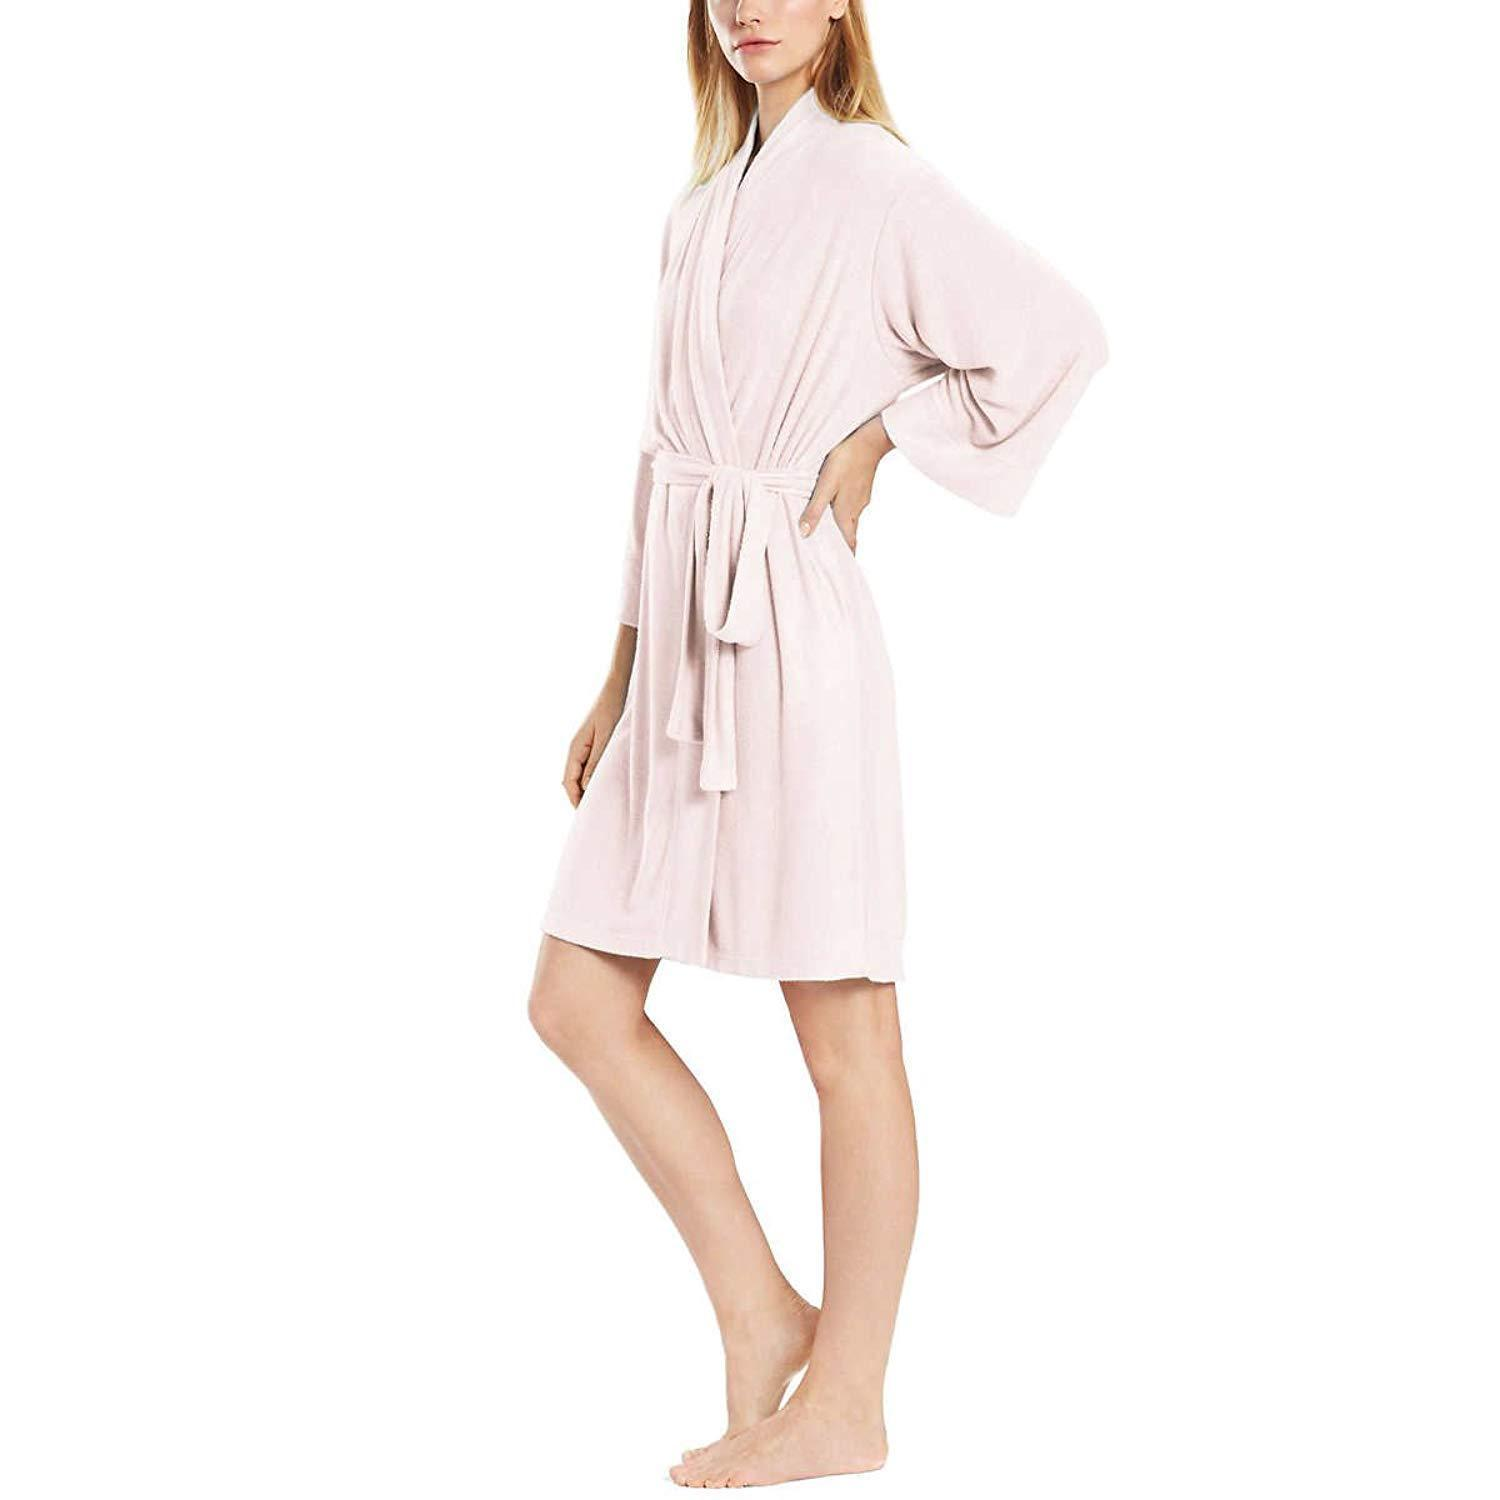 Primary image for Natori Women's Lightweight Terry Robe (Light Pink, L)